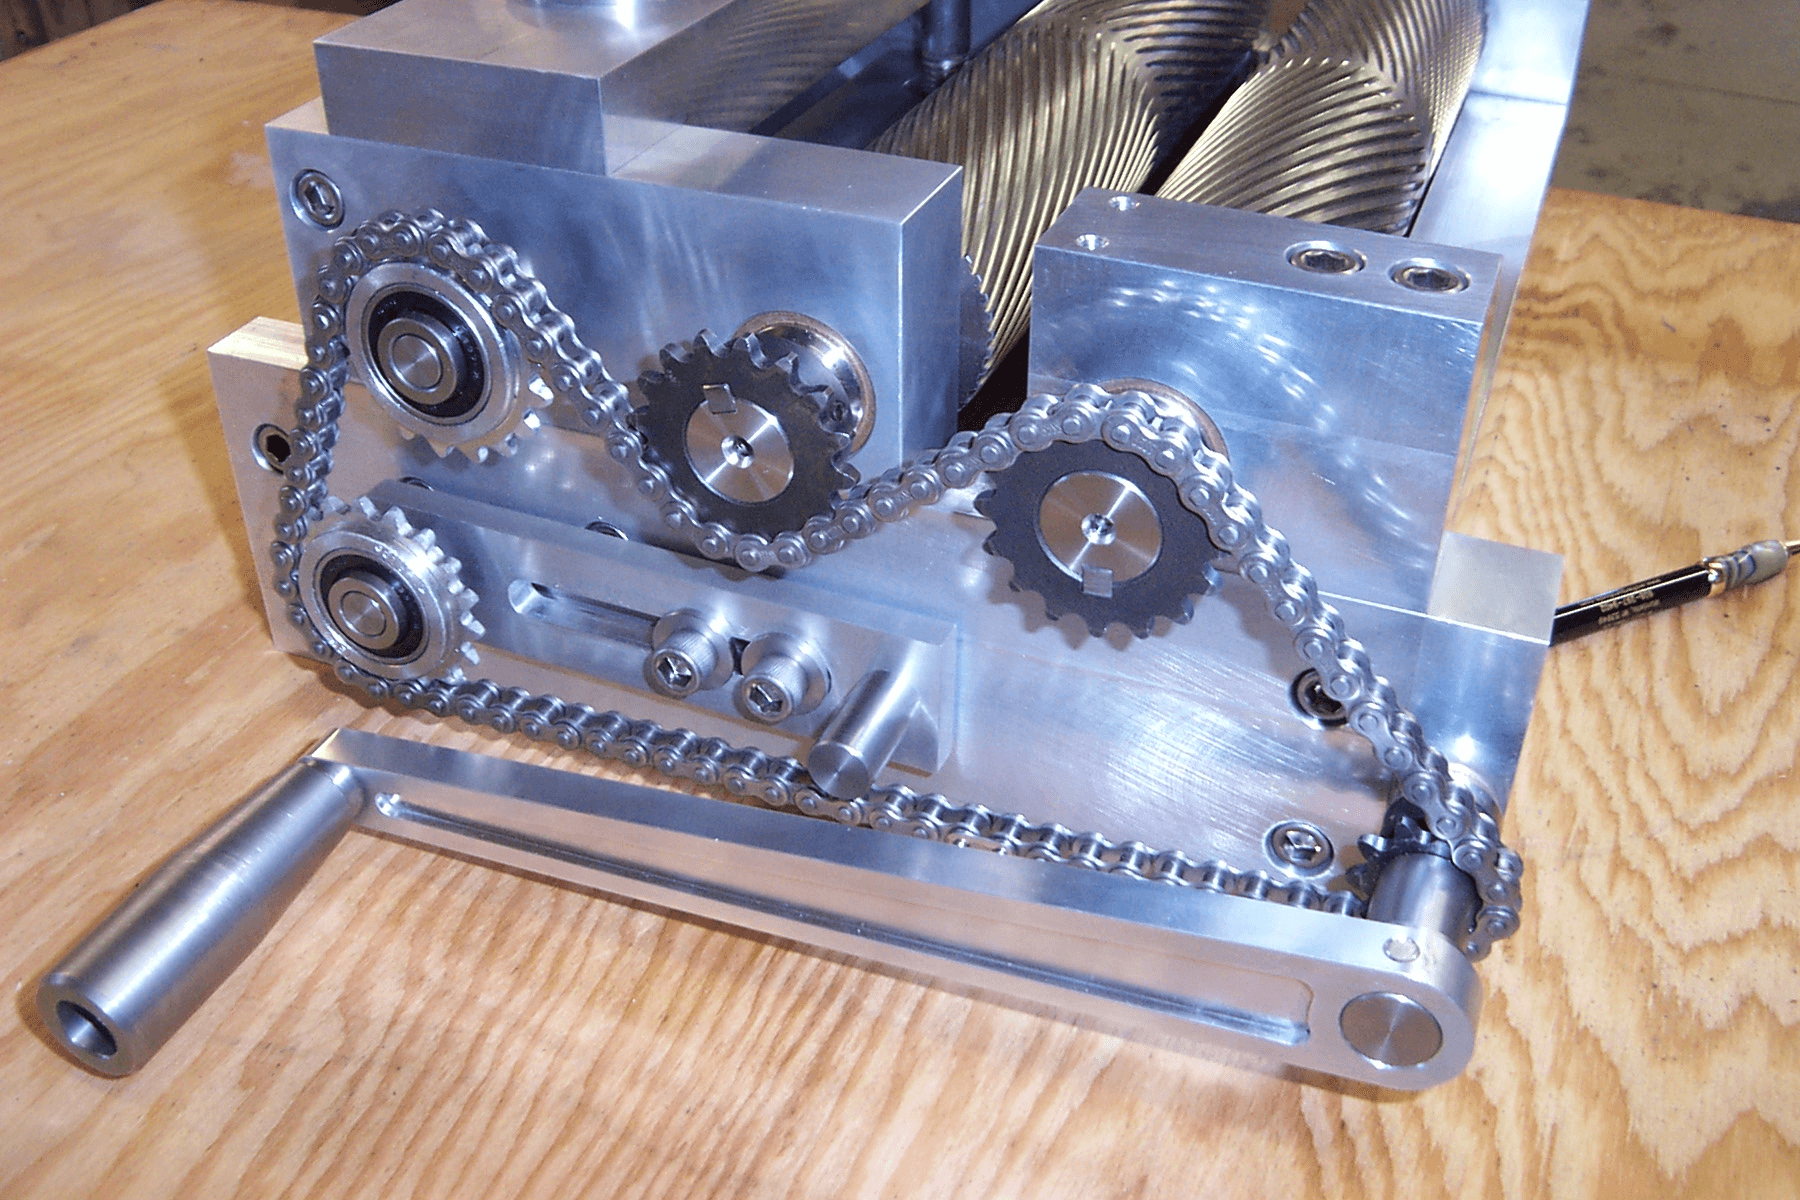 Driven Sprocket image